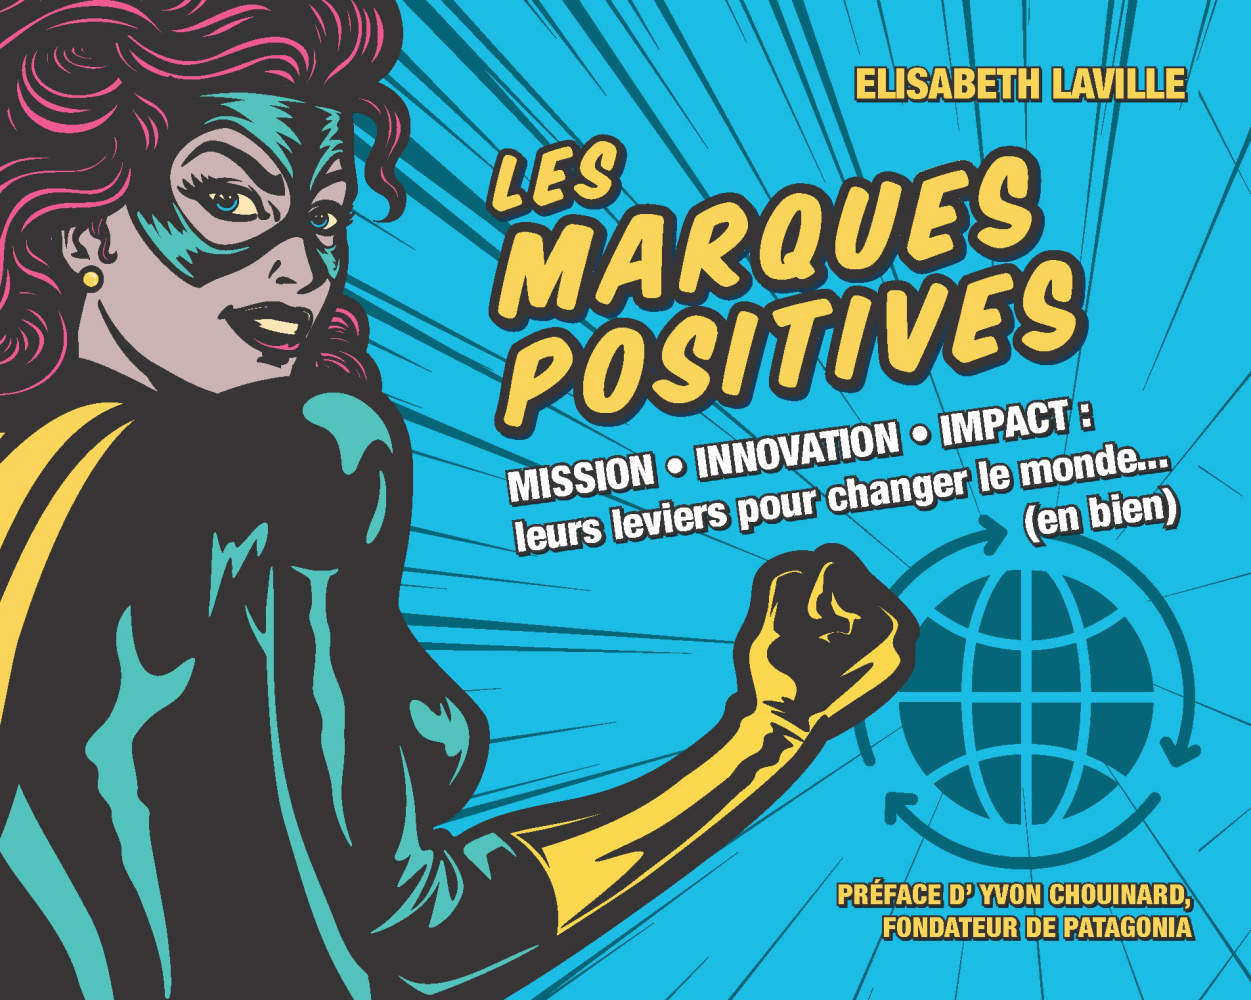 Les marques positives